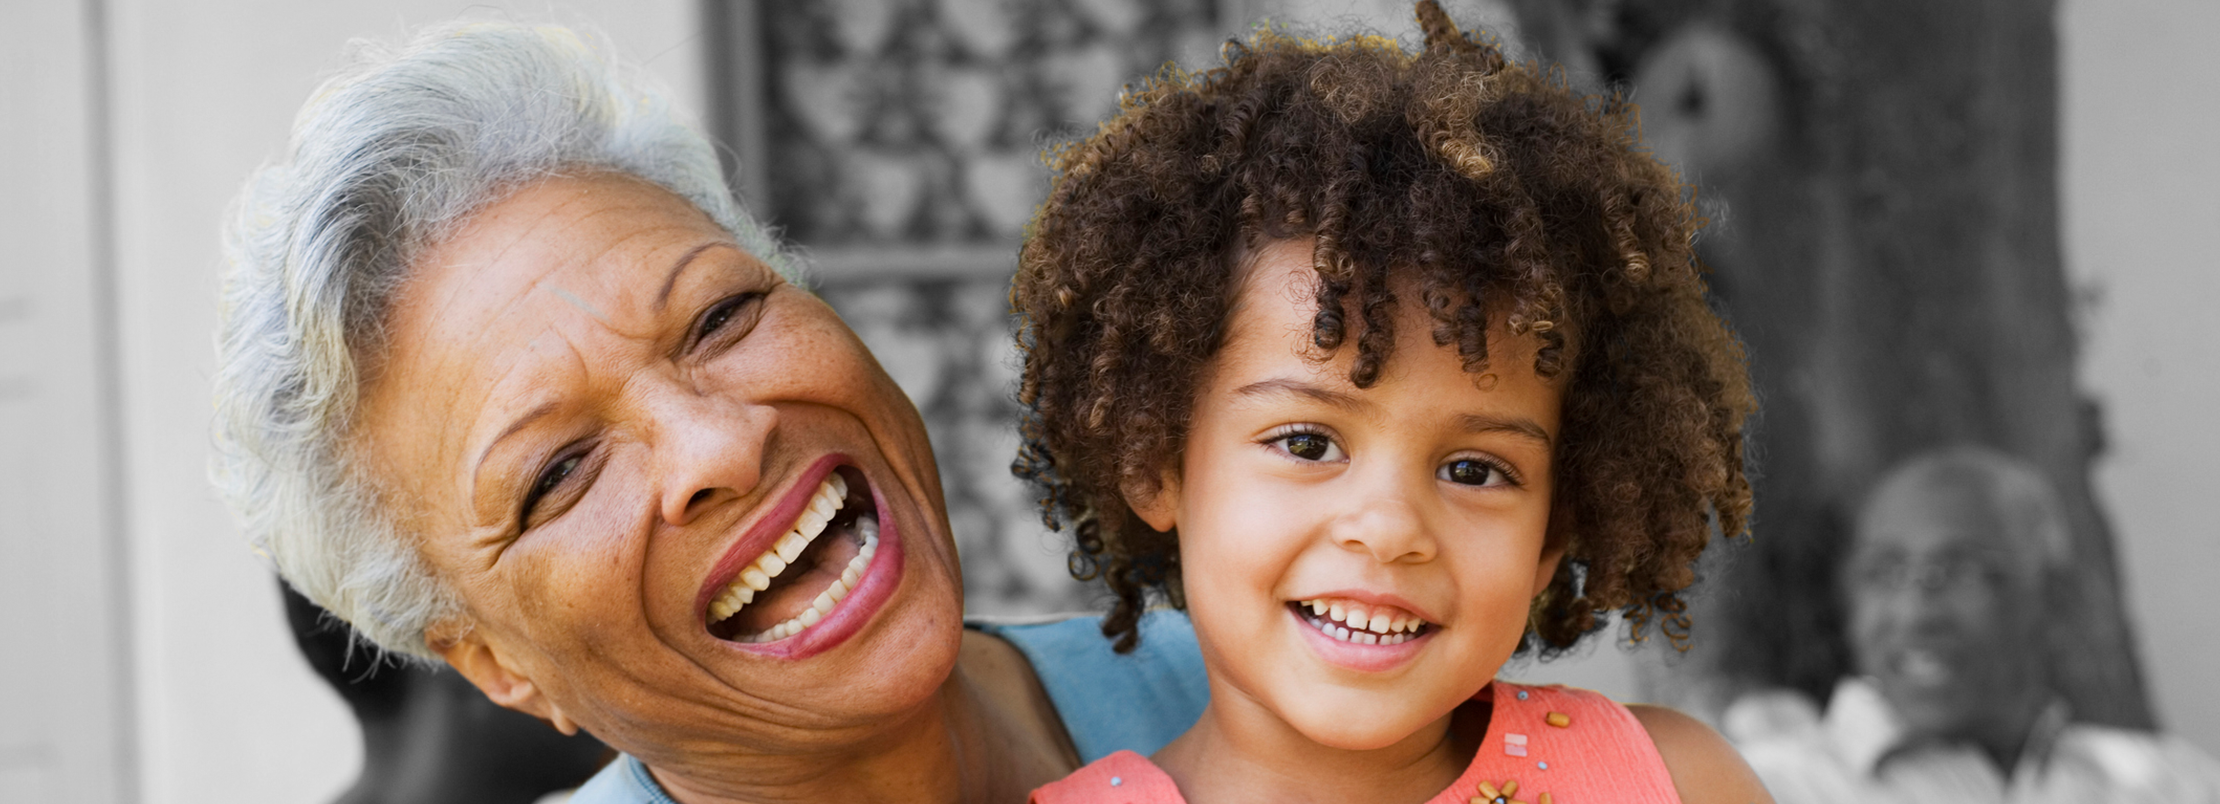 Black grandmother smiling with black grandaughter on her lap